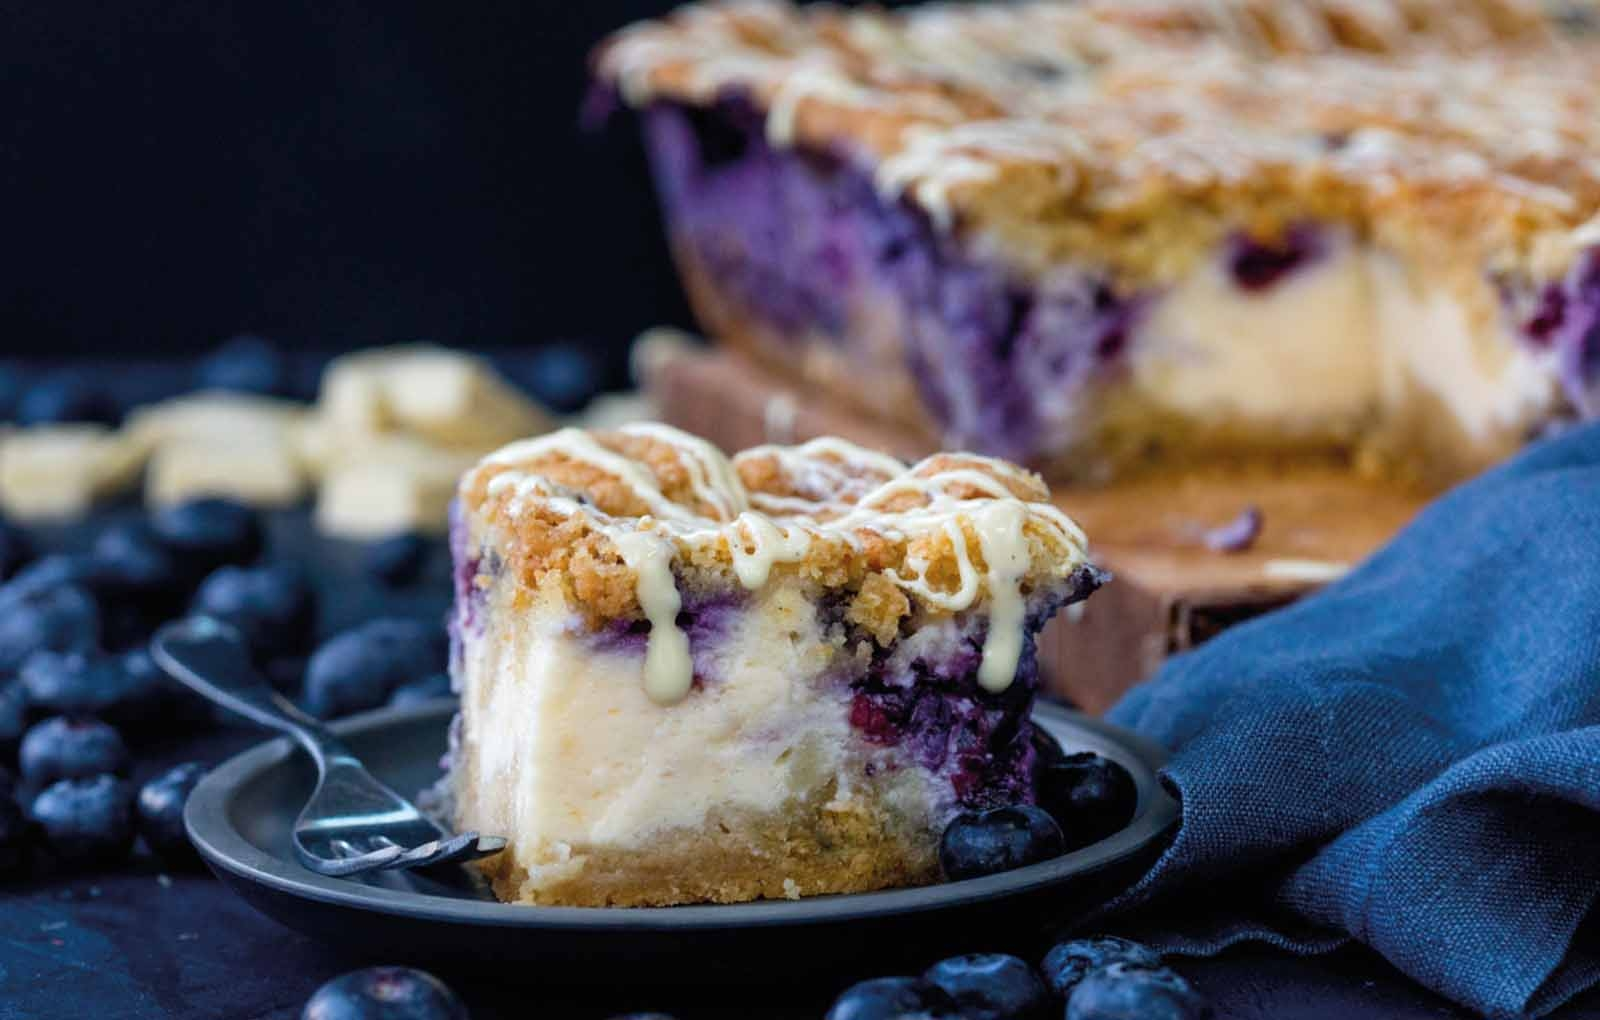 Recipe: Blueberry Cheesecake